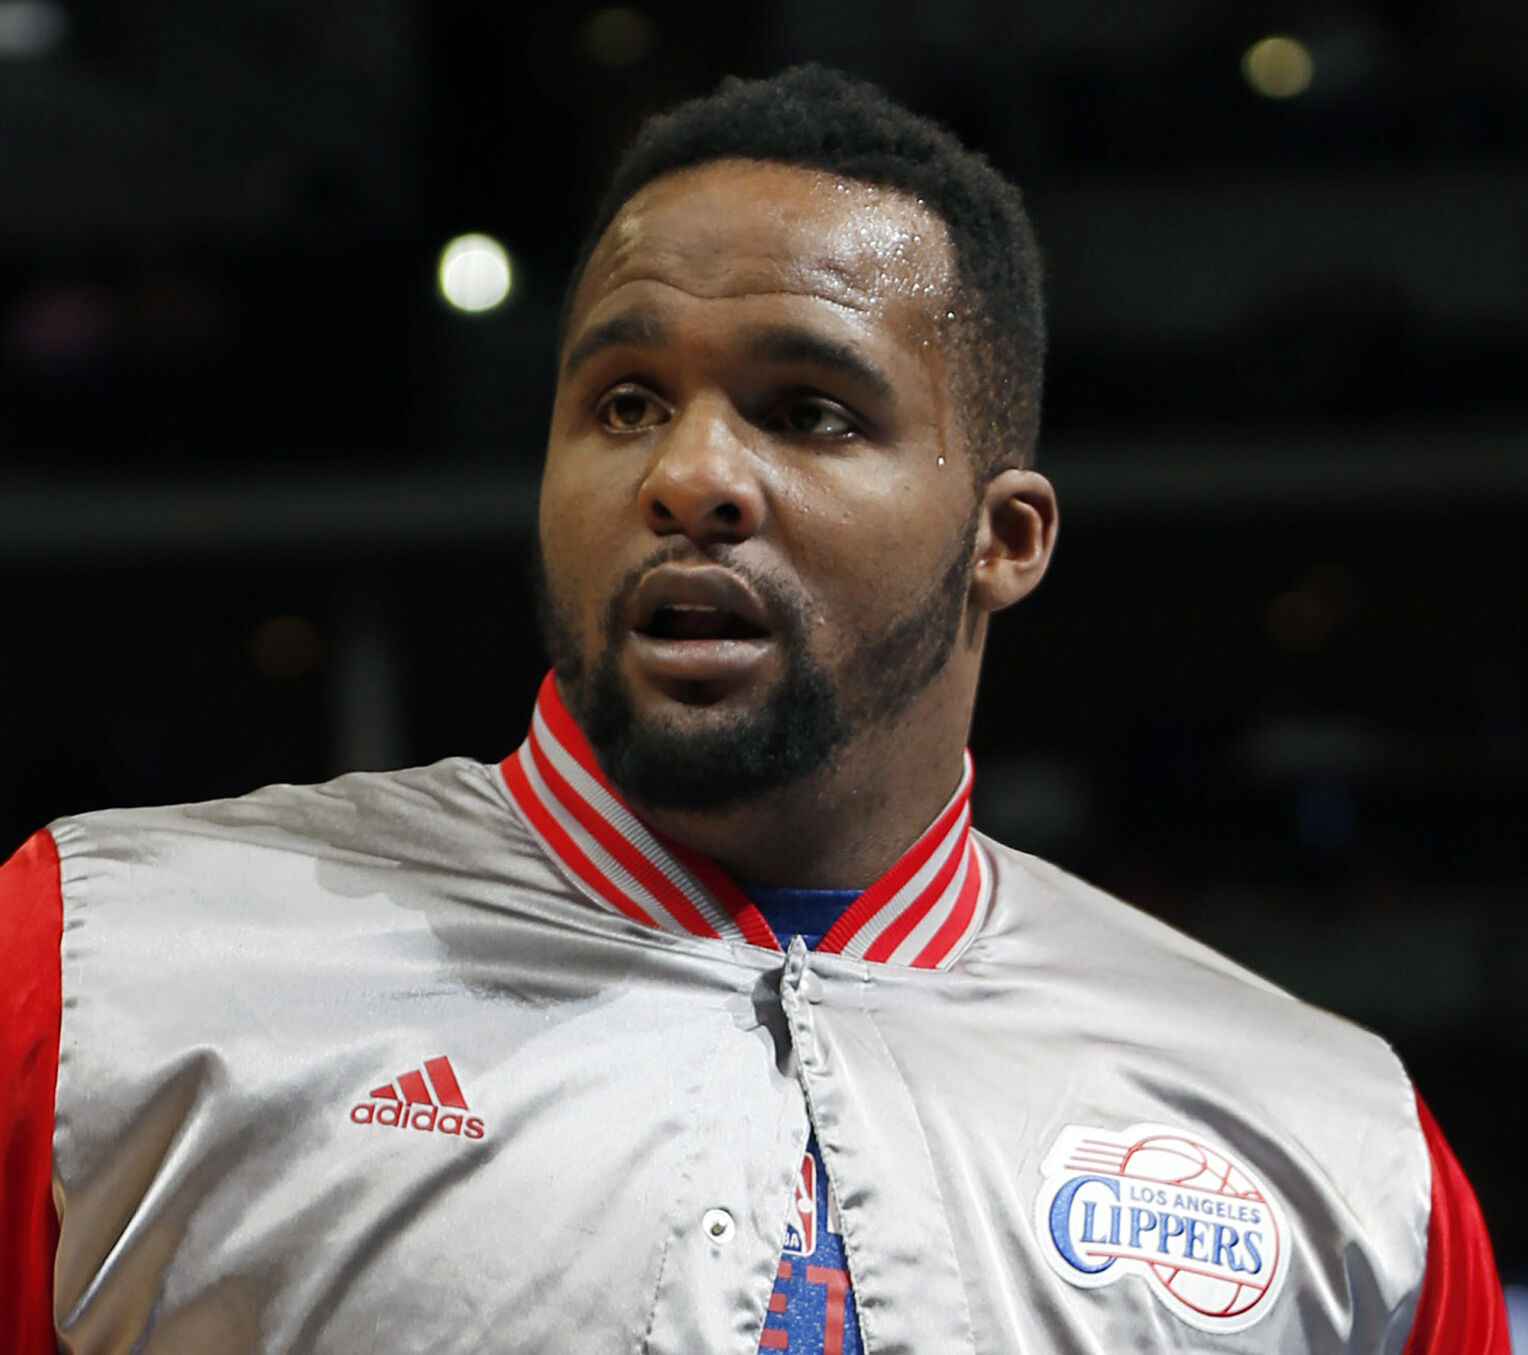 <p>Glen Davis, shown in2015 when playing for the Los Angeles Clippers, is amongformer players who have been charged with defrauding the NBA's health and welfare benefit plan.</p>